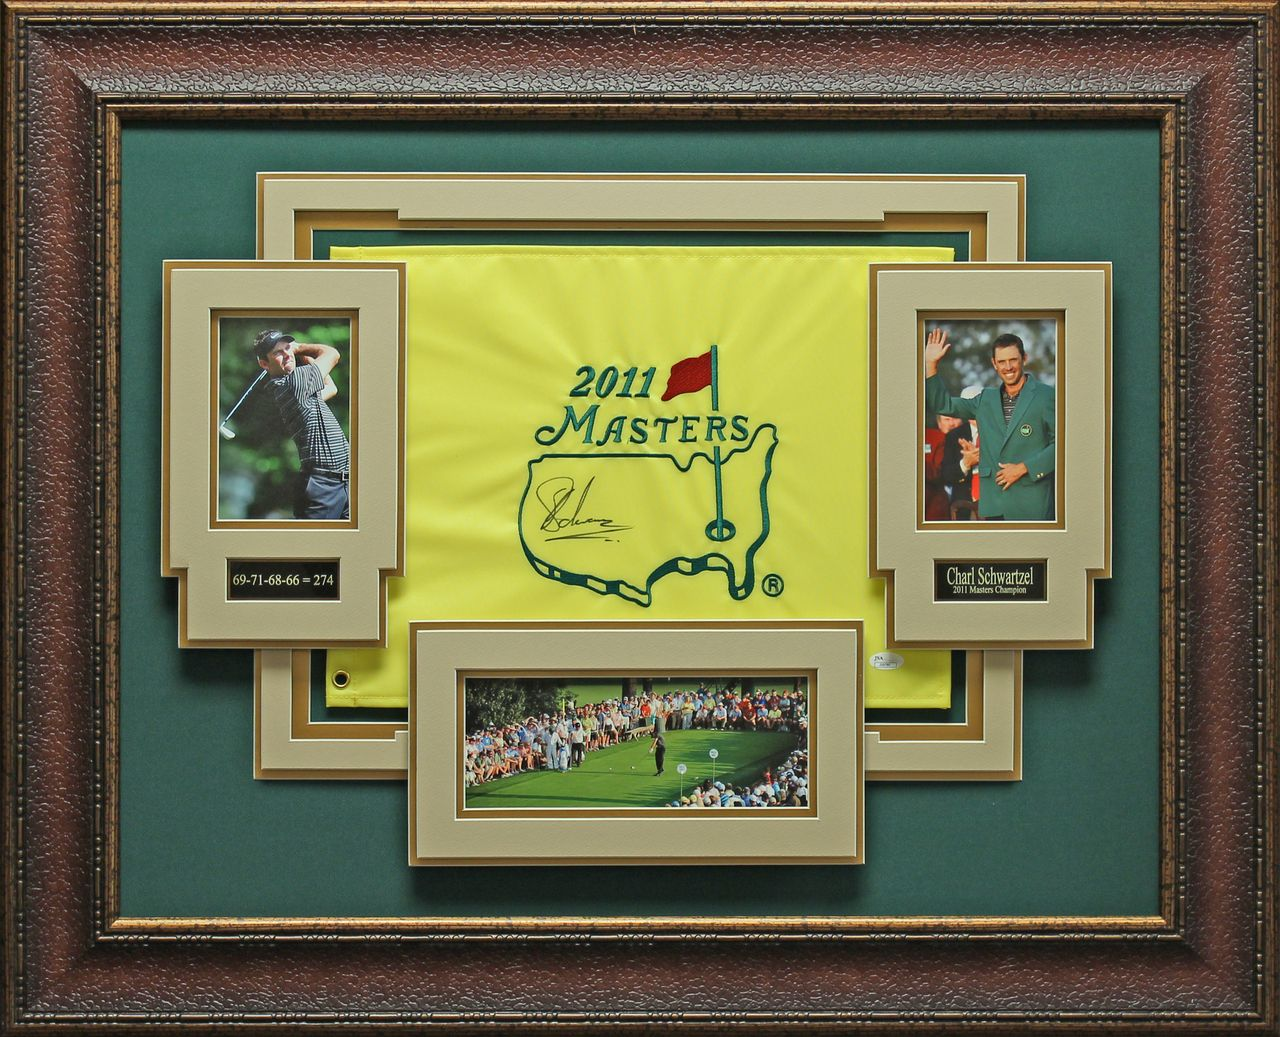 Charl Schwartzel Signed 2011 Masters Pin Flag Display | Masters ...